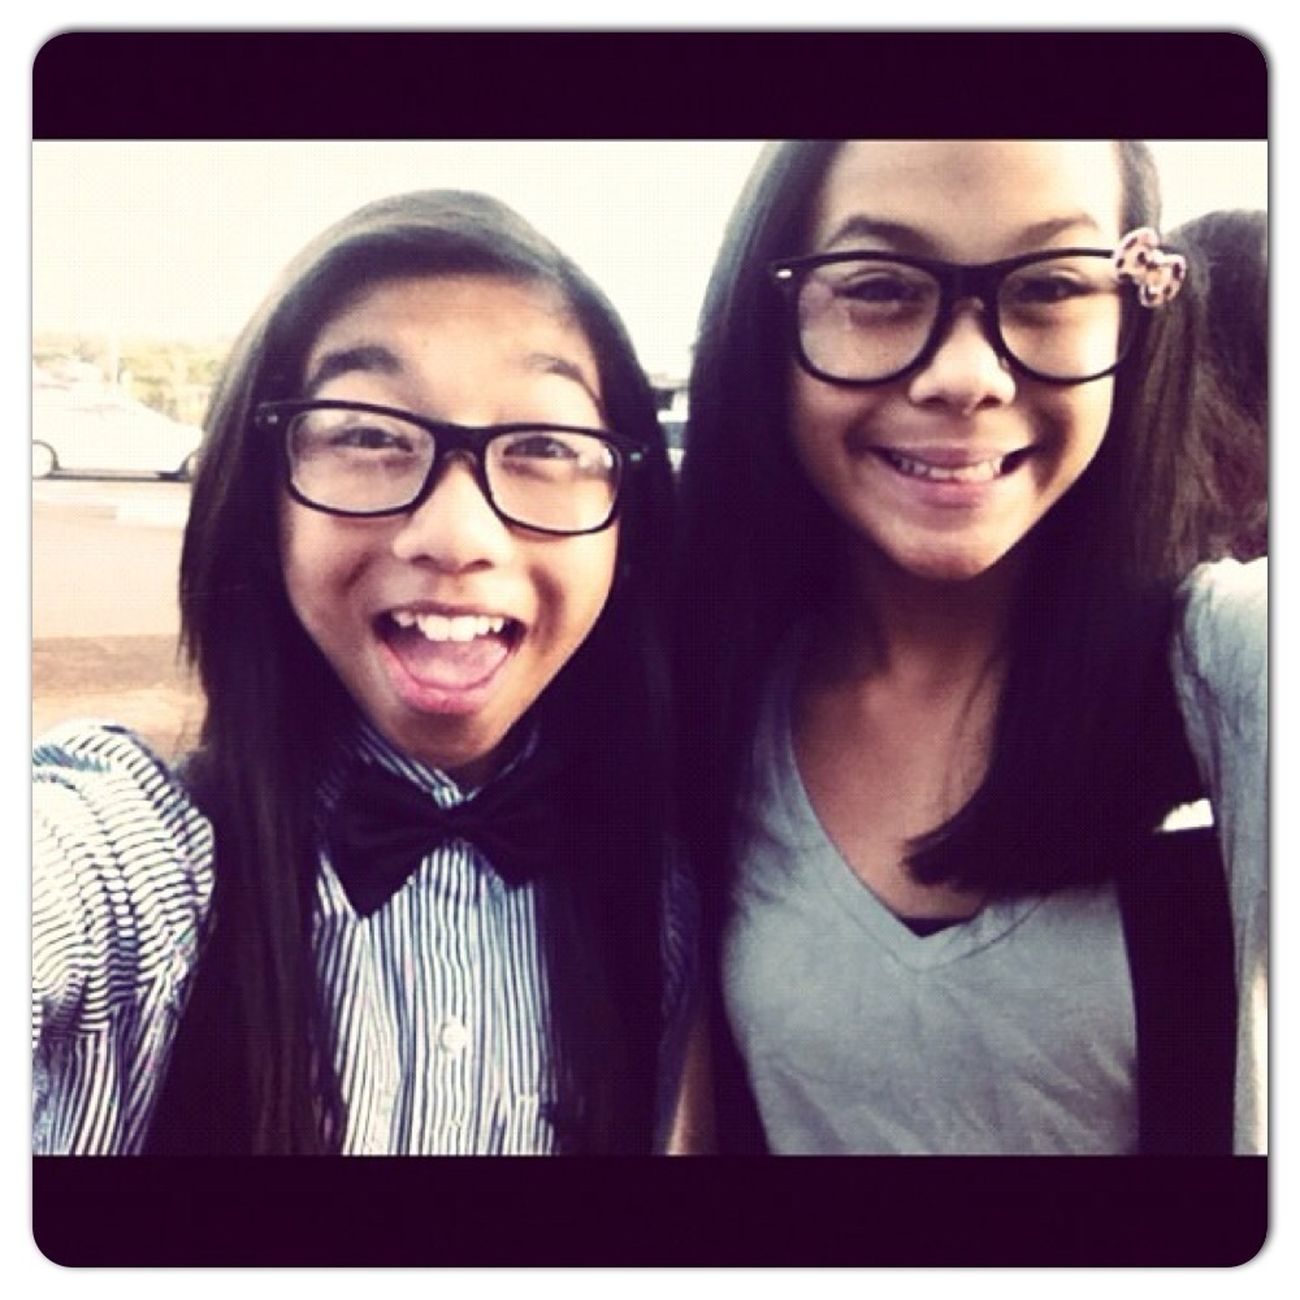 One of my favorite pictures i ever took :) geek day at school